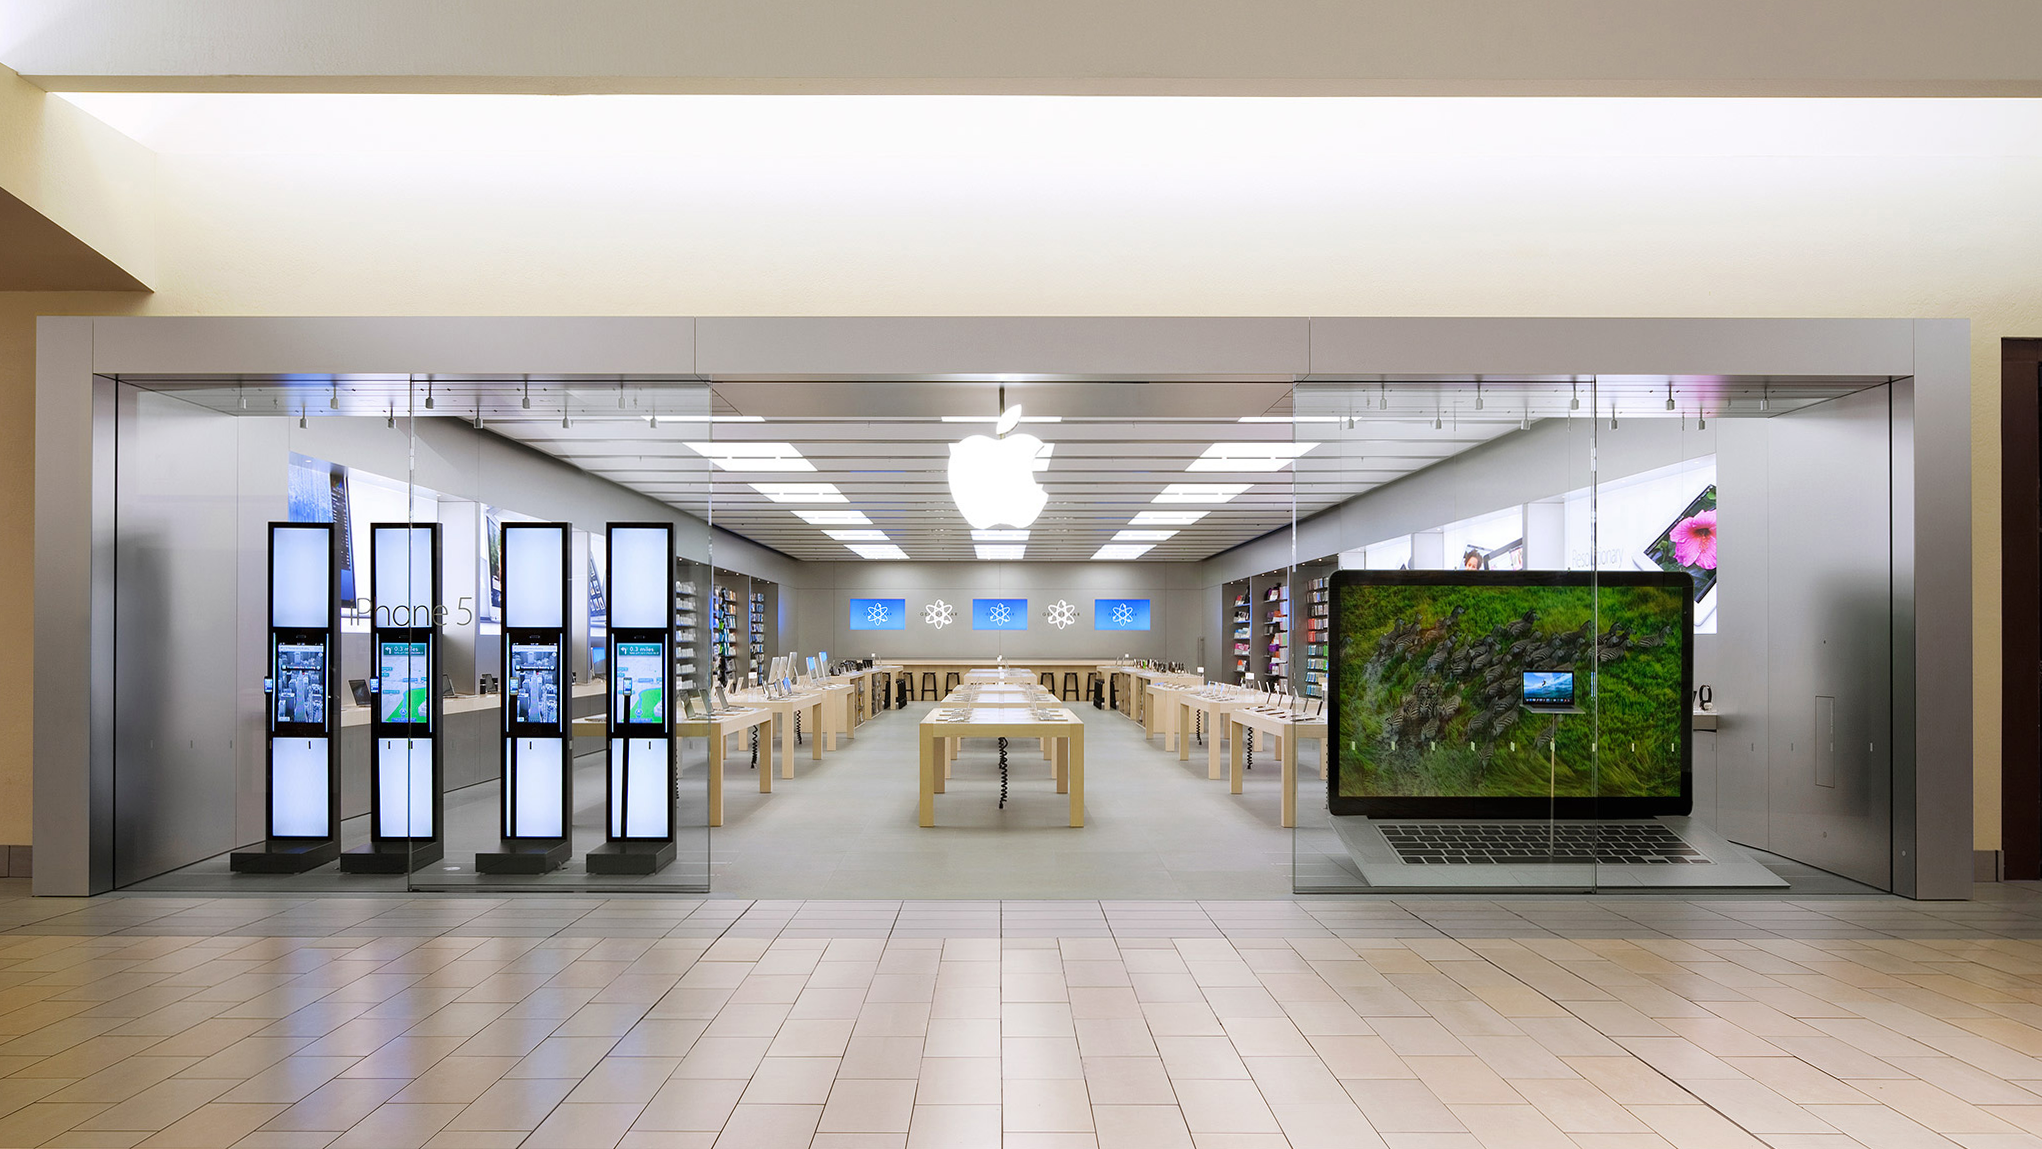 The storefront of the Apple Store in Bakersfield, California.